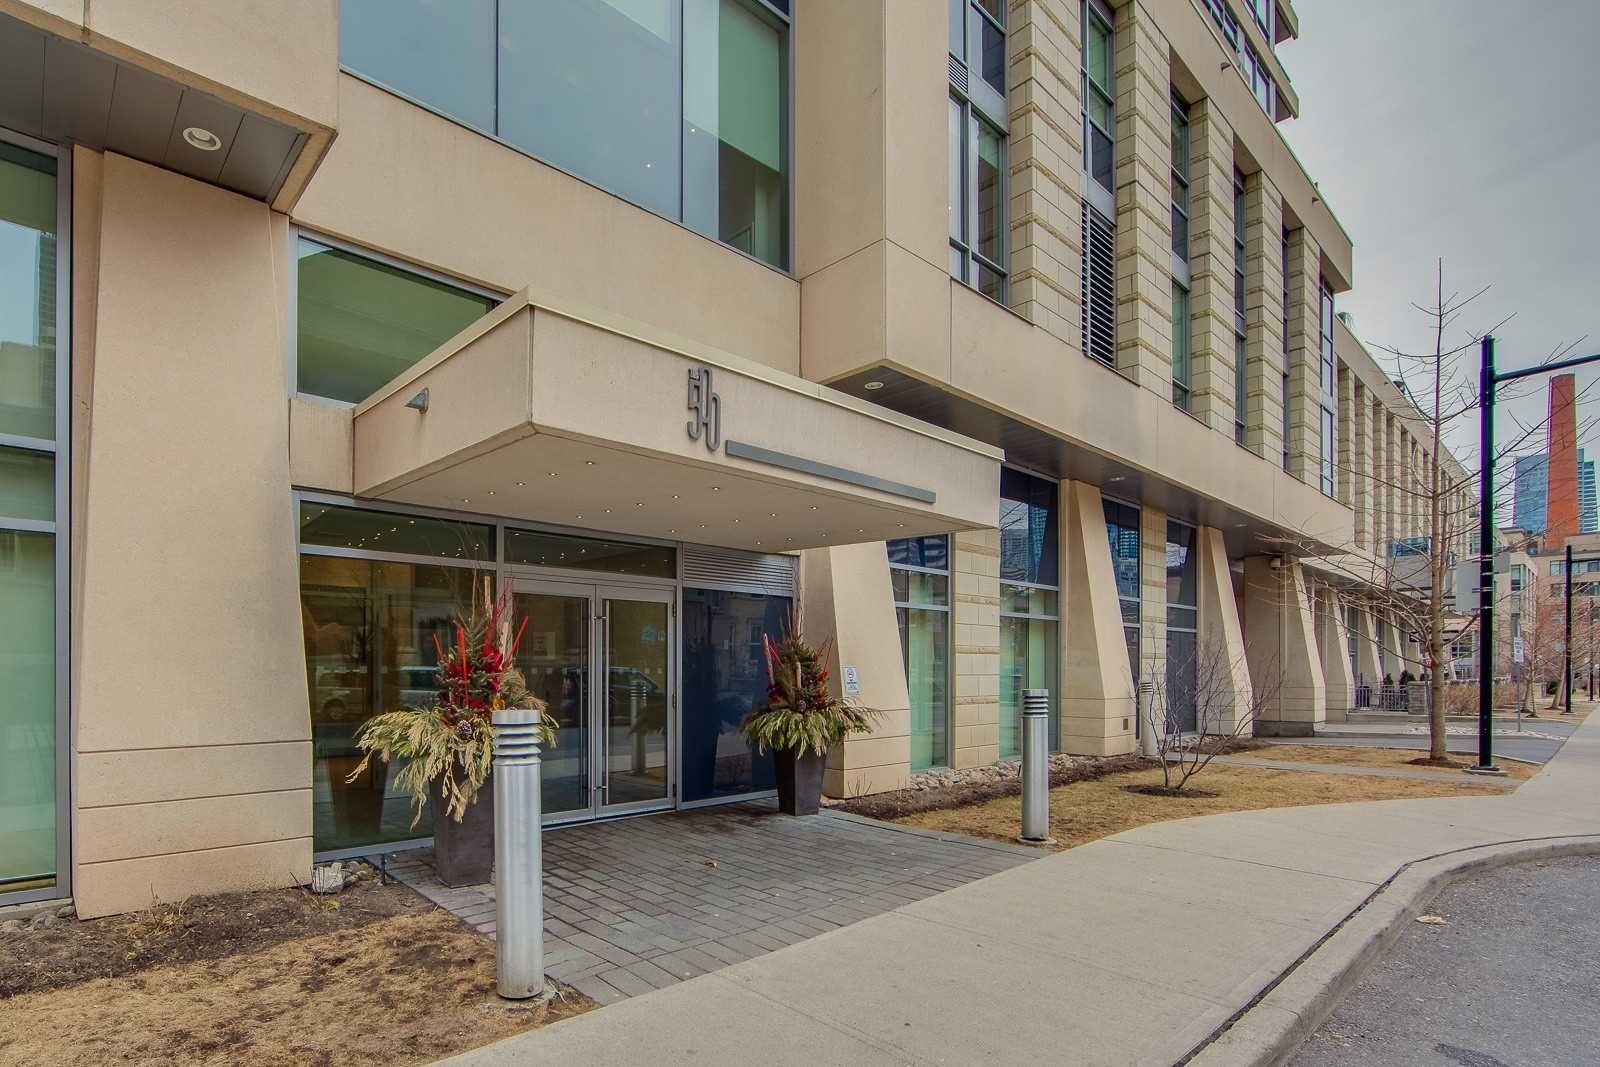 Main Photo: 1407 500 Sherbourne Street in Toronto: North St. James Town Condo for sale (Toronto C08)  : MLS®# C5088340